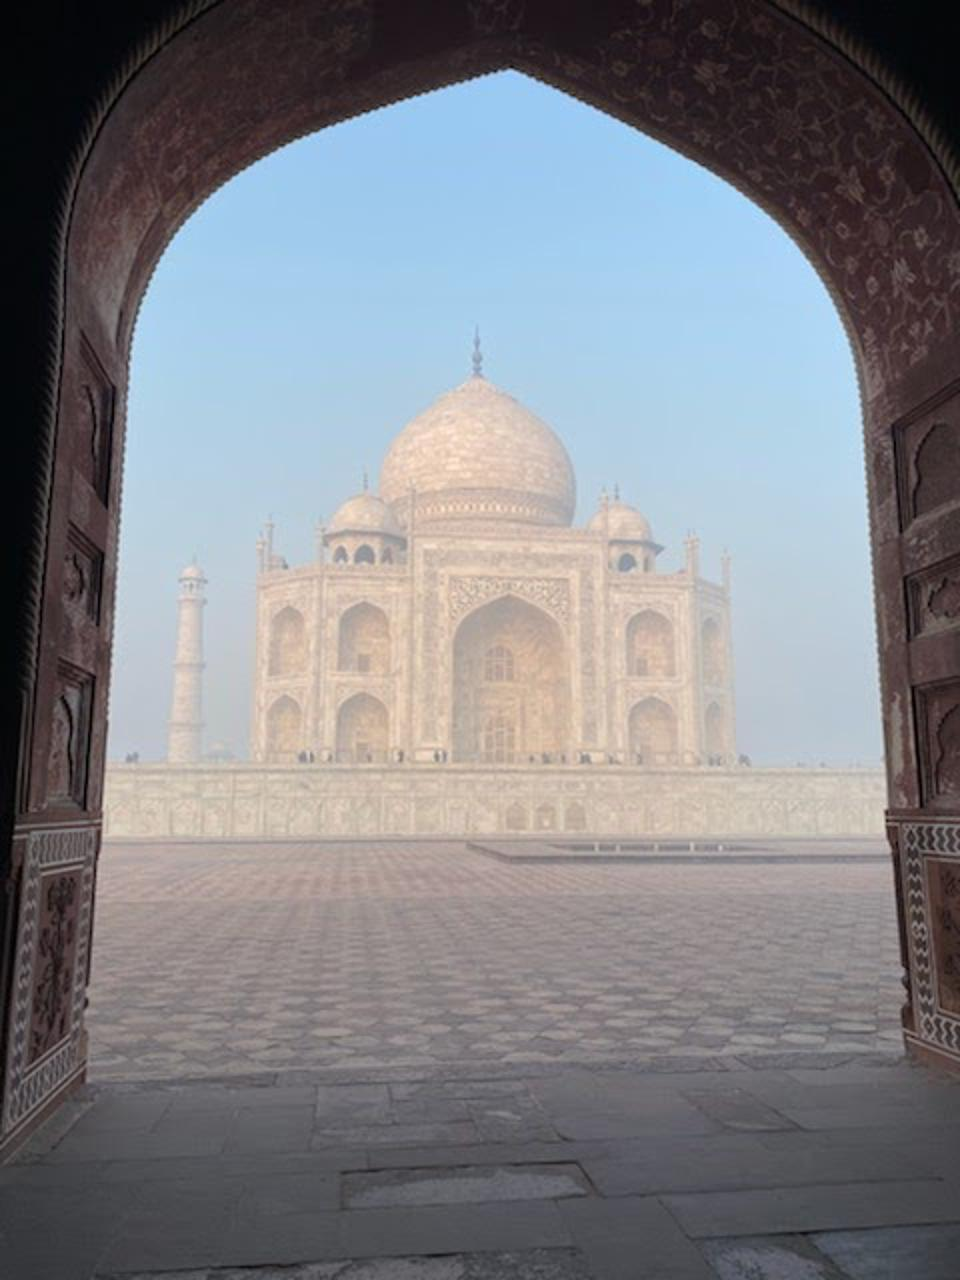 A view of the Taj Mahal in India.